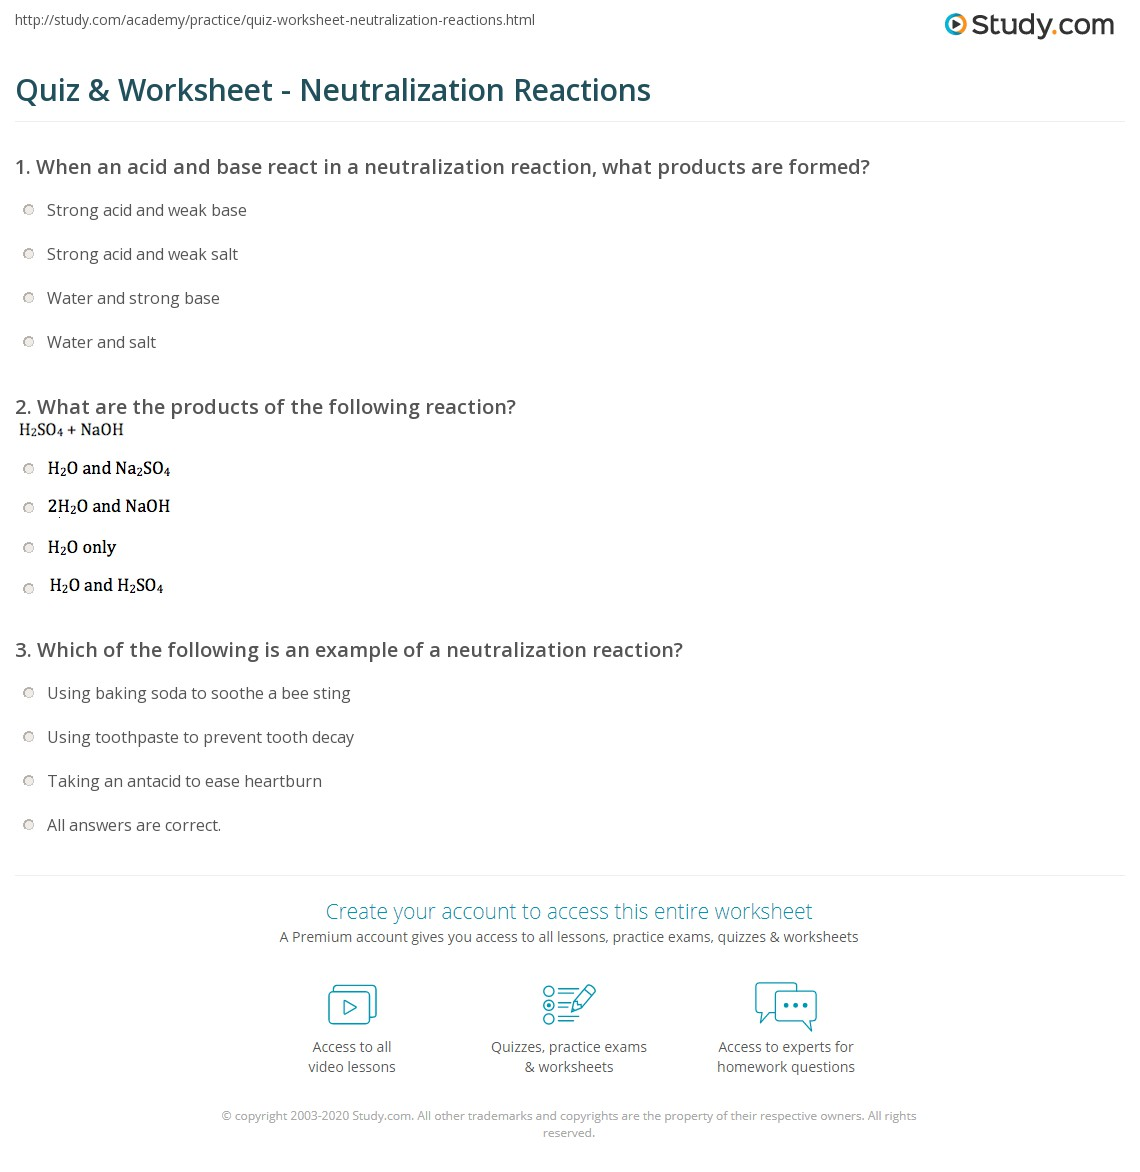 Quiz & Worksheet - Neutralization Reactions | Study com